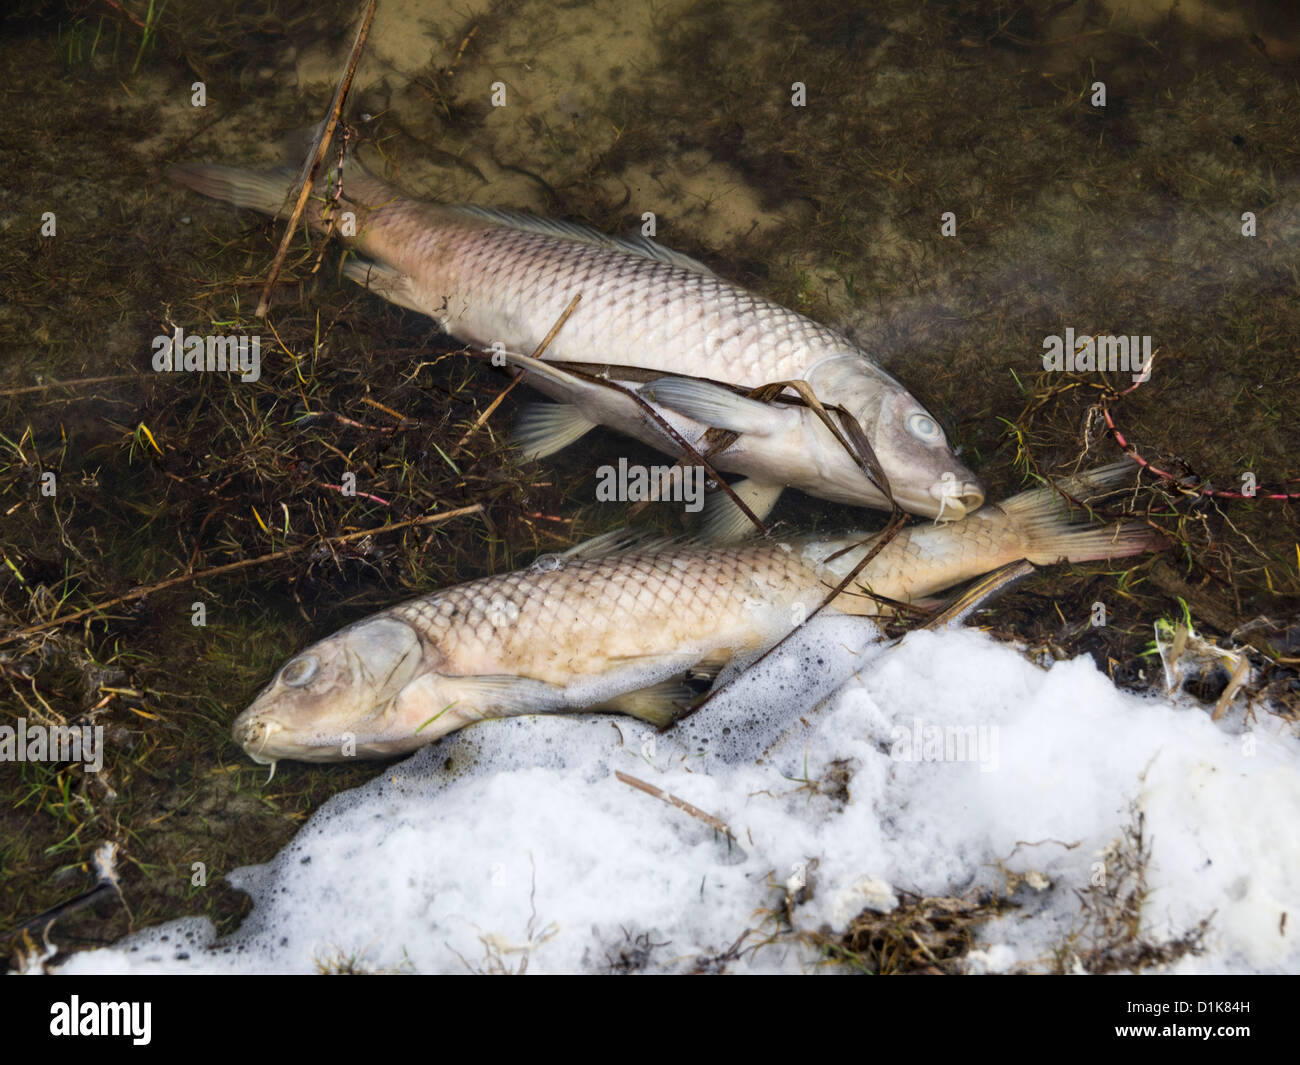 Dead fish as result of water pollution - Stock Image